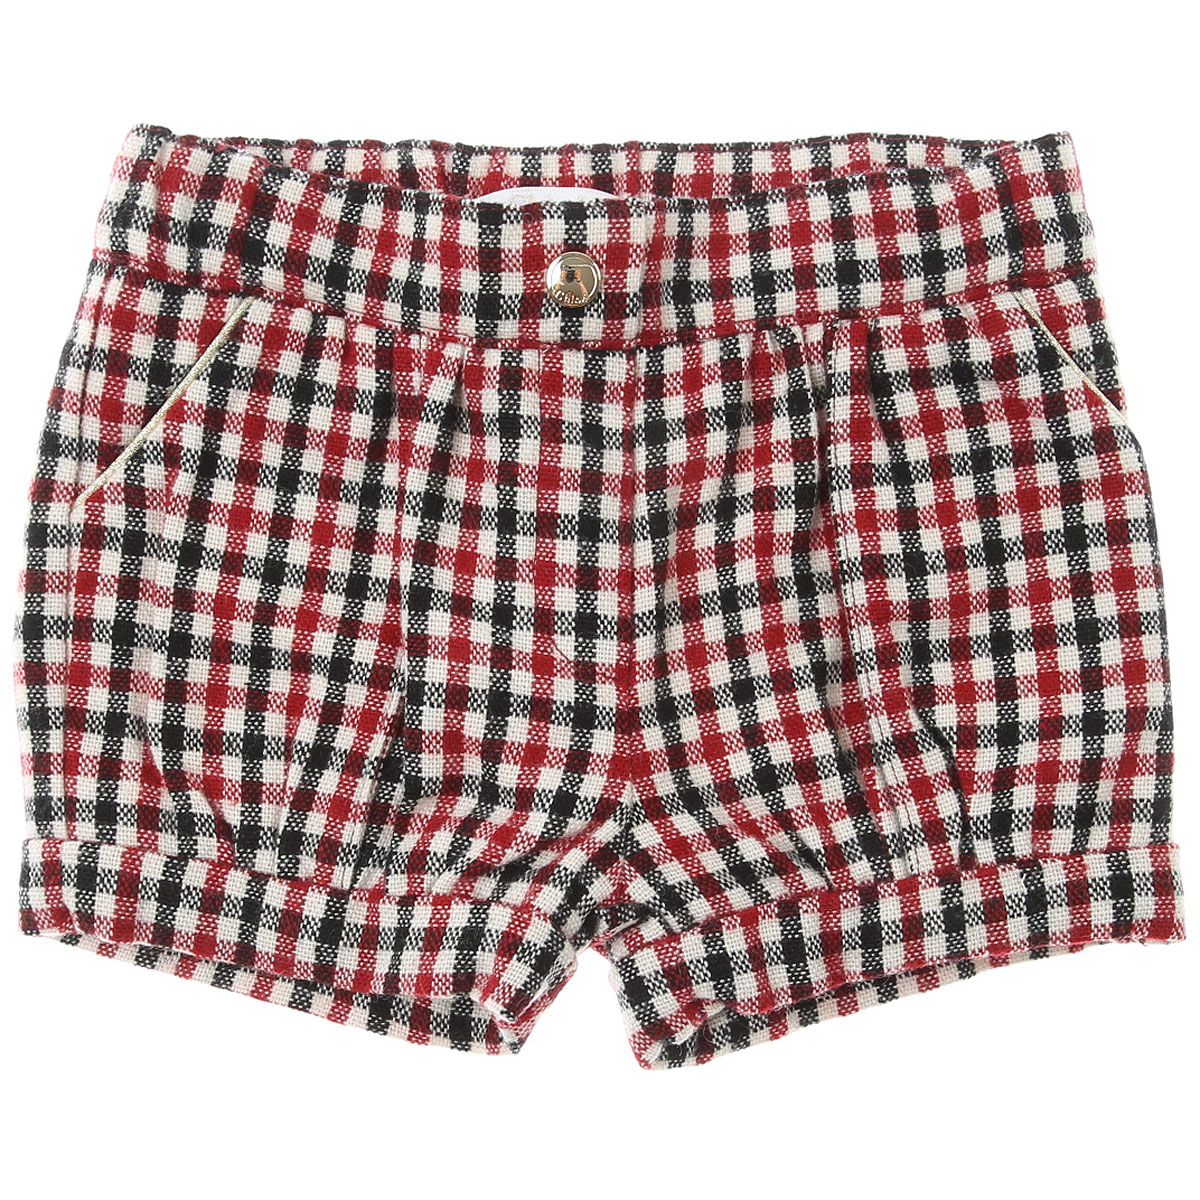 Chloe Baby Shorts for Girls On Sale, Red, Acrylic, 2019, 12M 18M 2Y 6M 9M